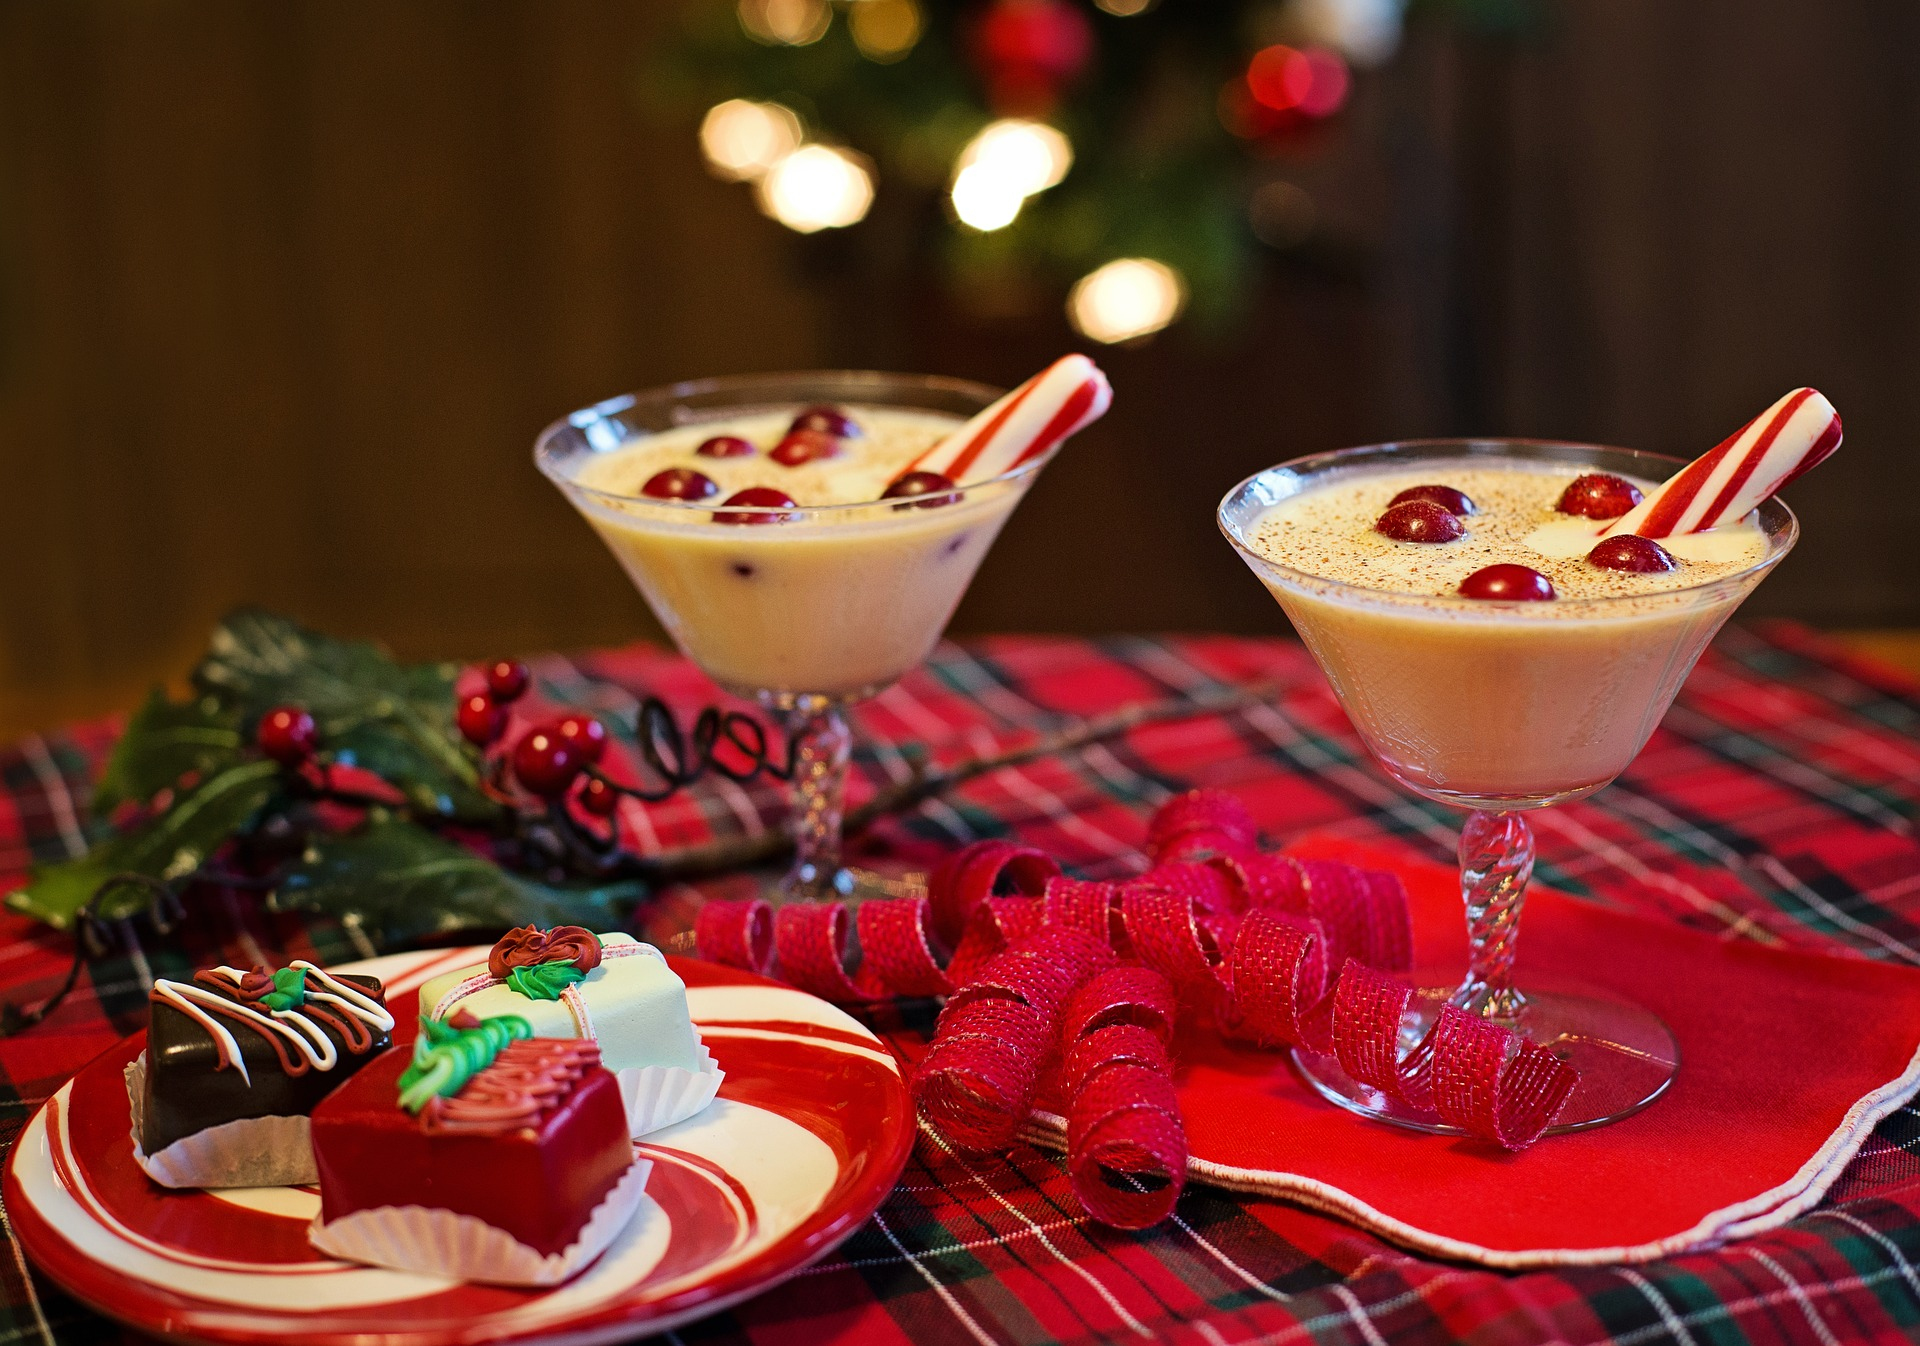 Ultimate Free Range Eggnog Recipe and Other Festive Drinks